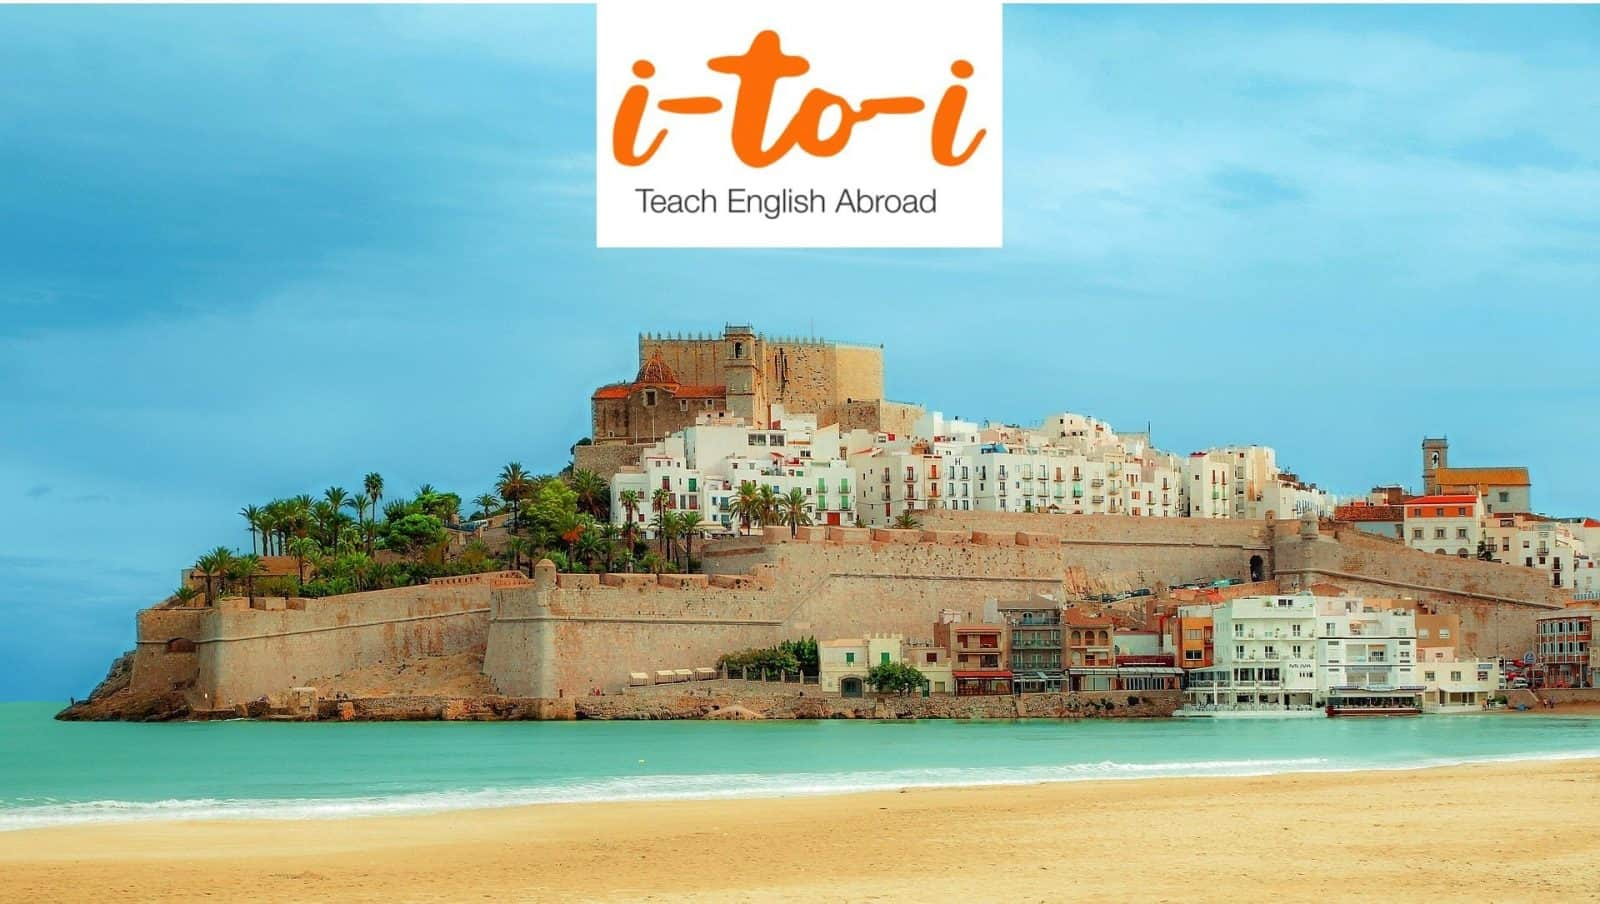 Interview with i to i TEFL